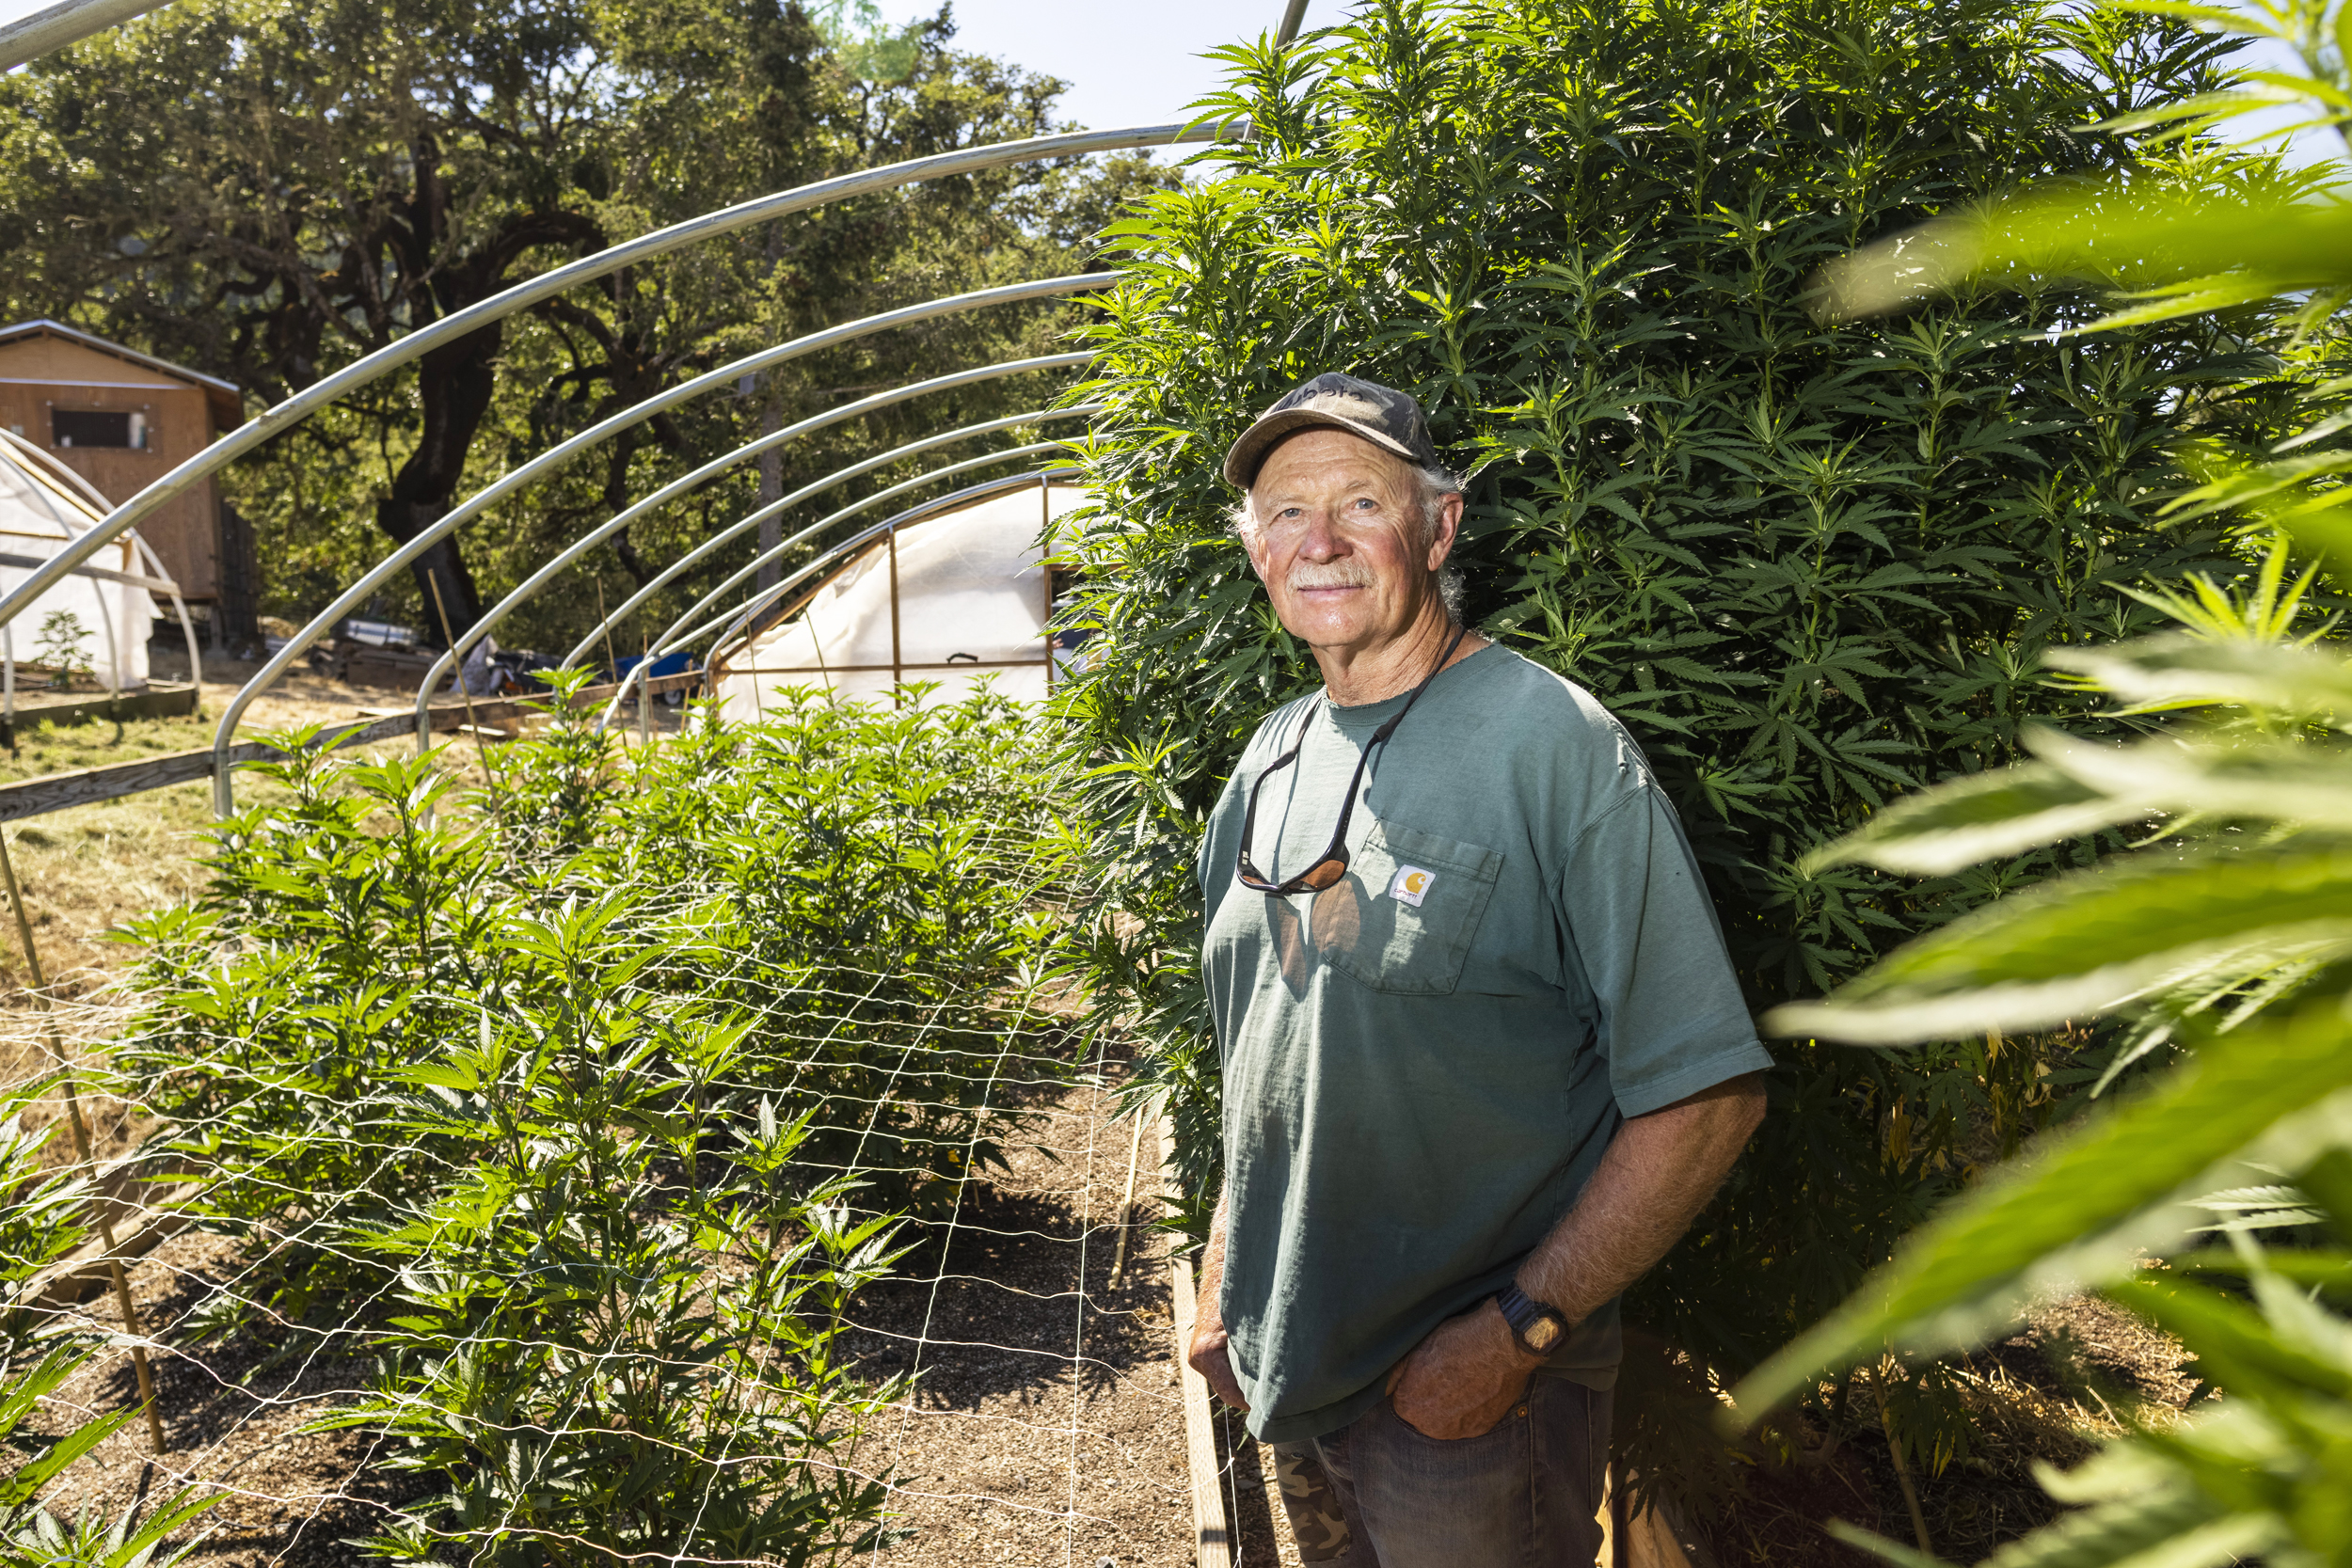 California cannabis growers face big threats. The potential damages go beyond the plant.